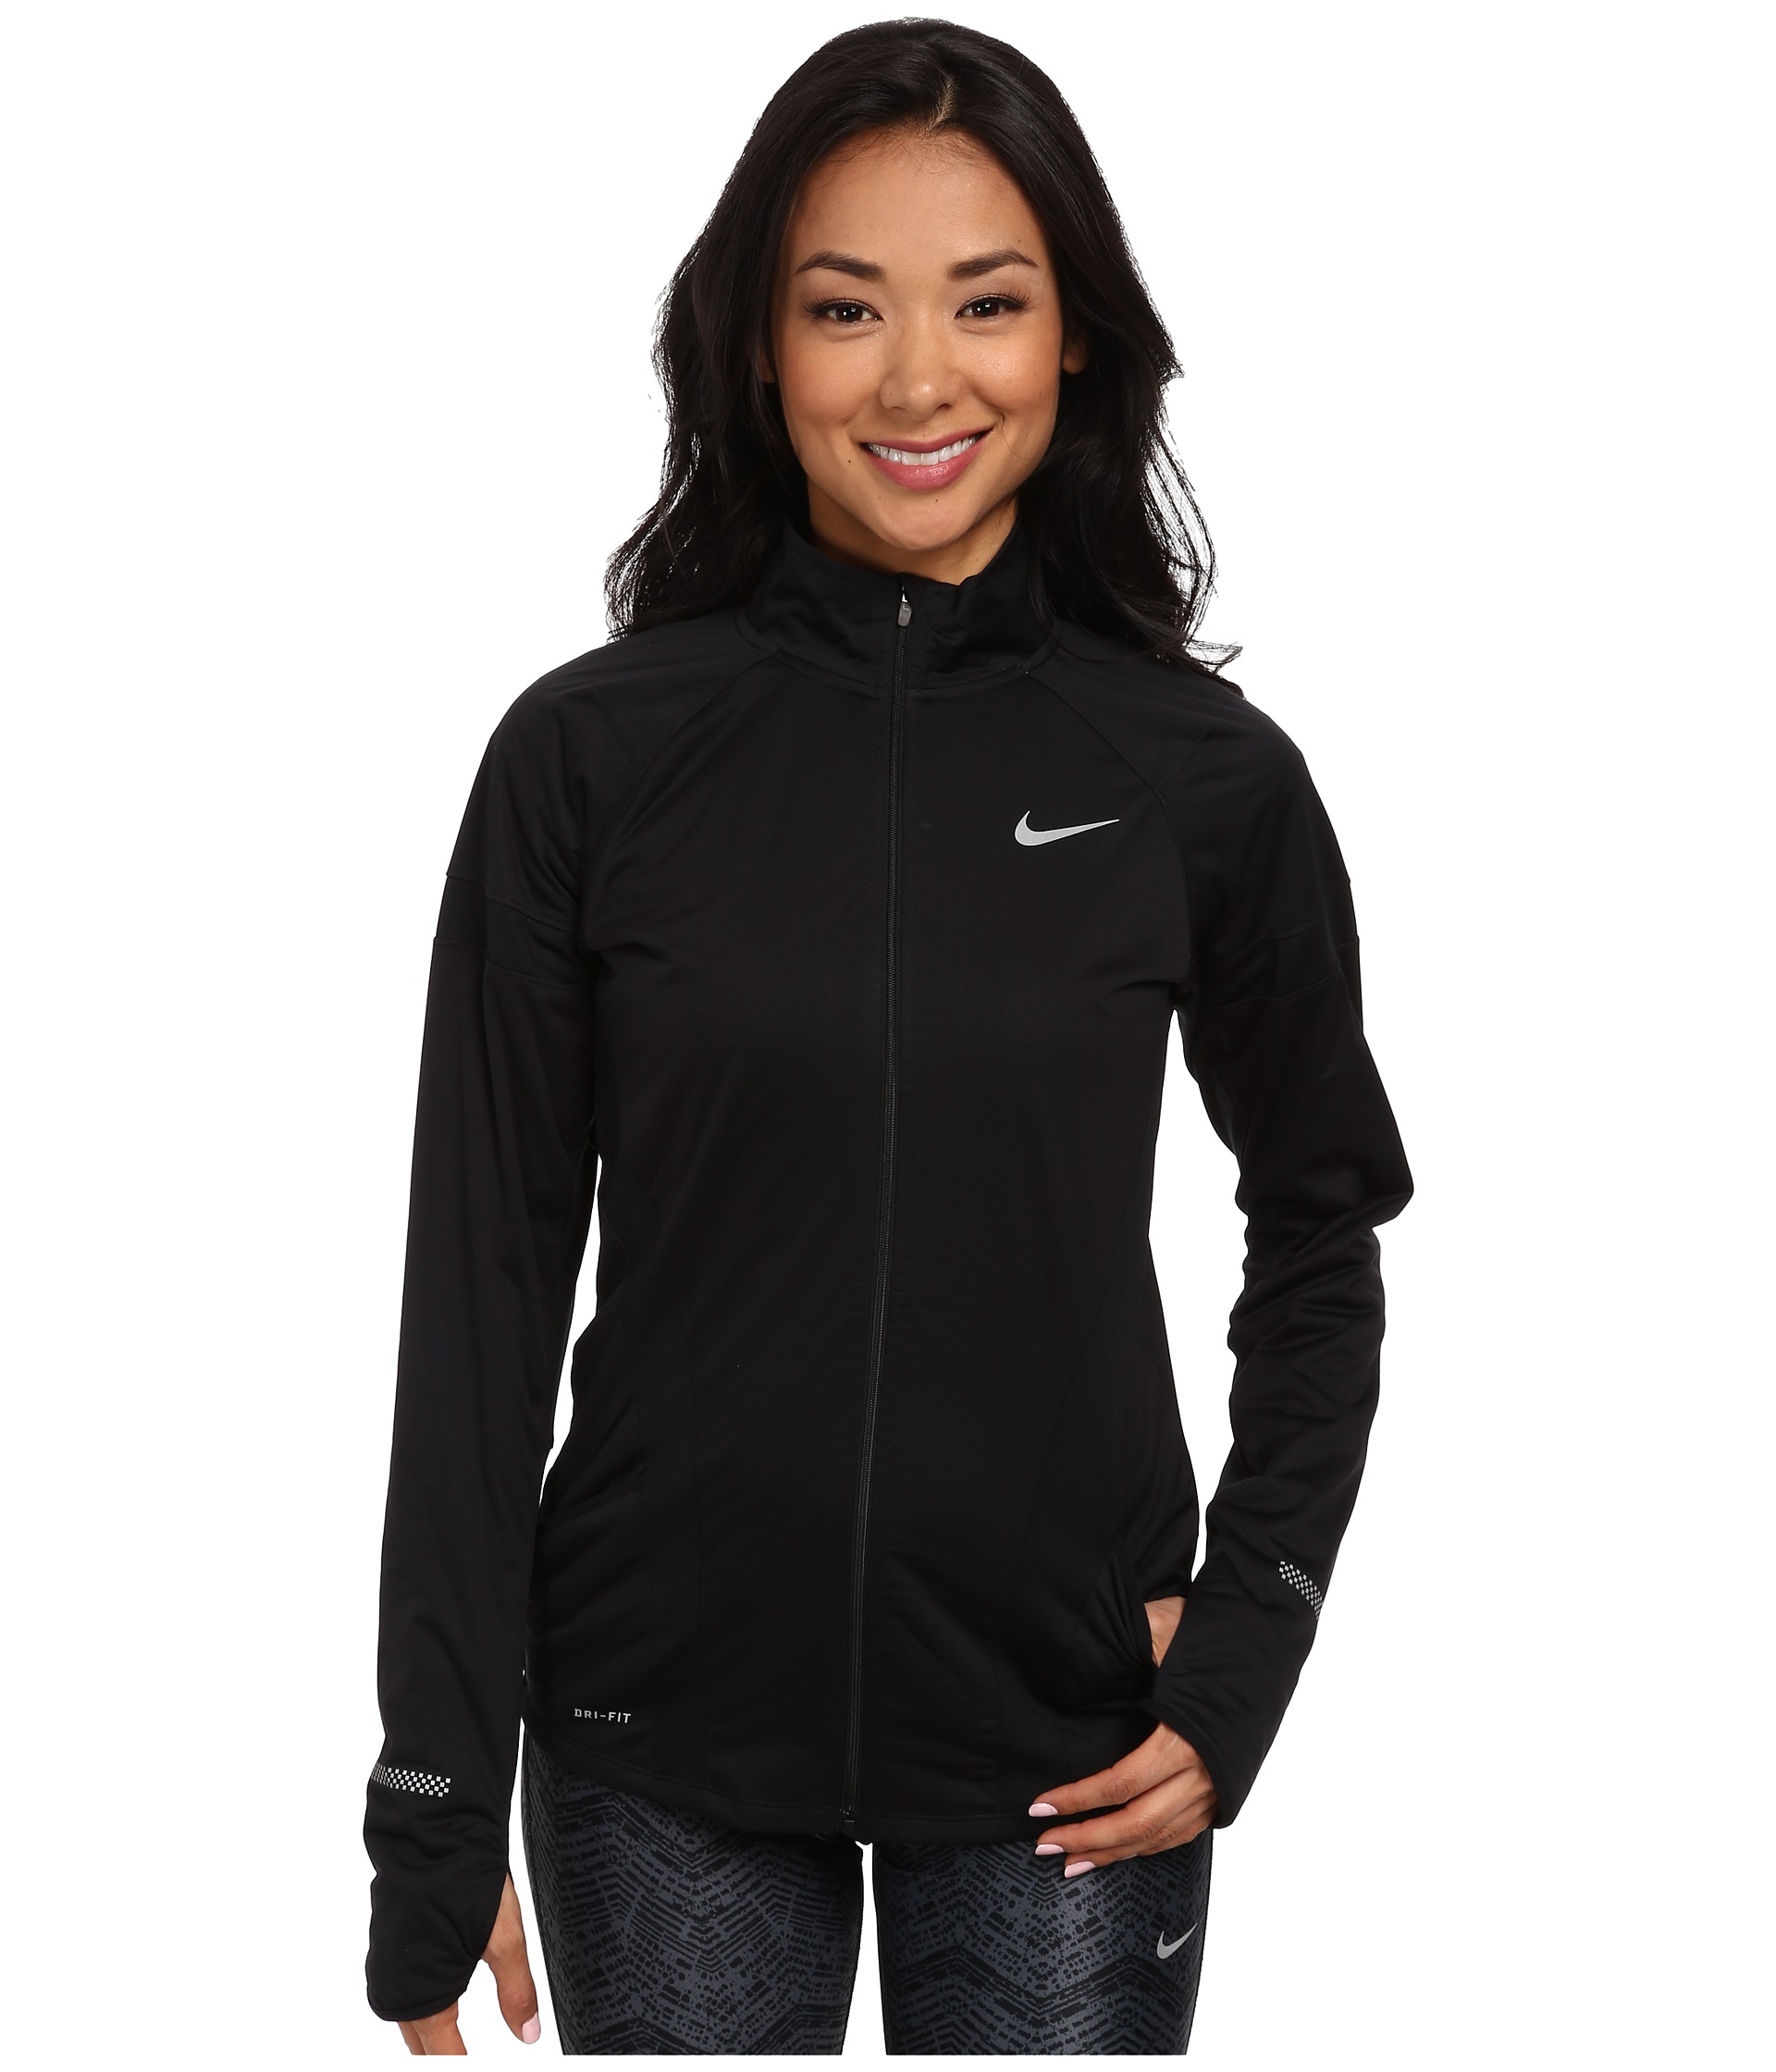 e01b59053ab07 Lyst - Nike Element Shield Full-Zip Jacket in Black